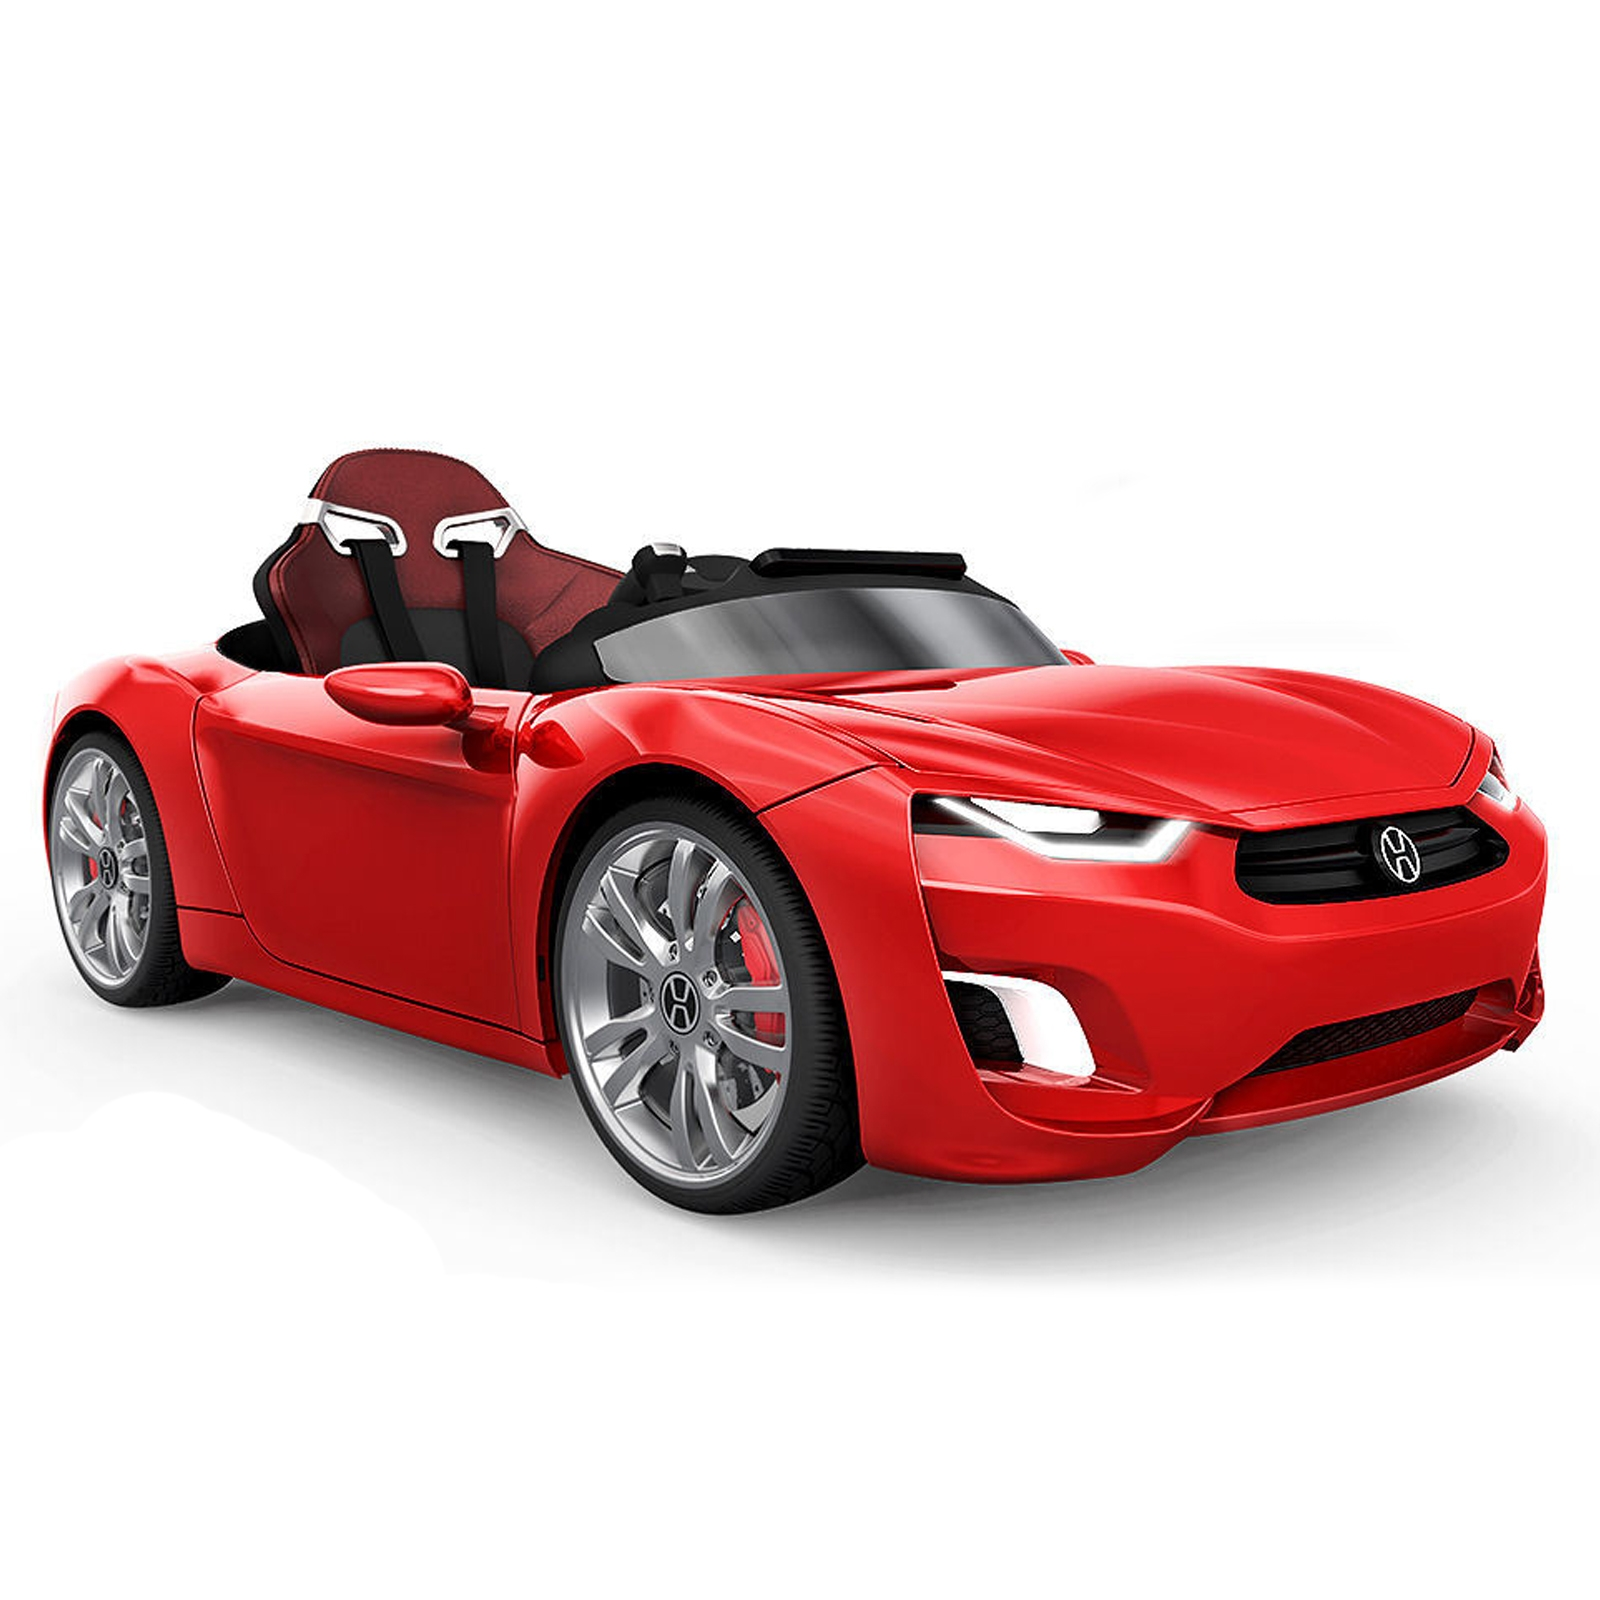 henes broon f830 12v kids battery powered ride on car in red